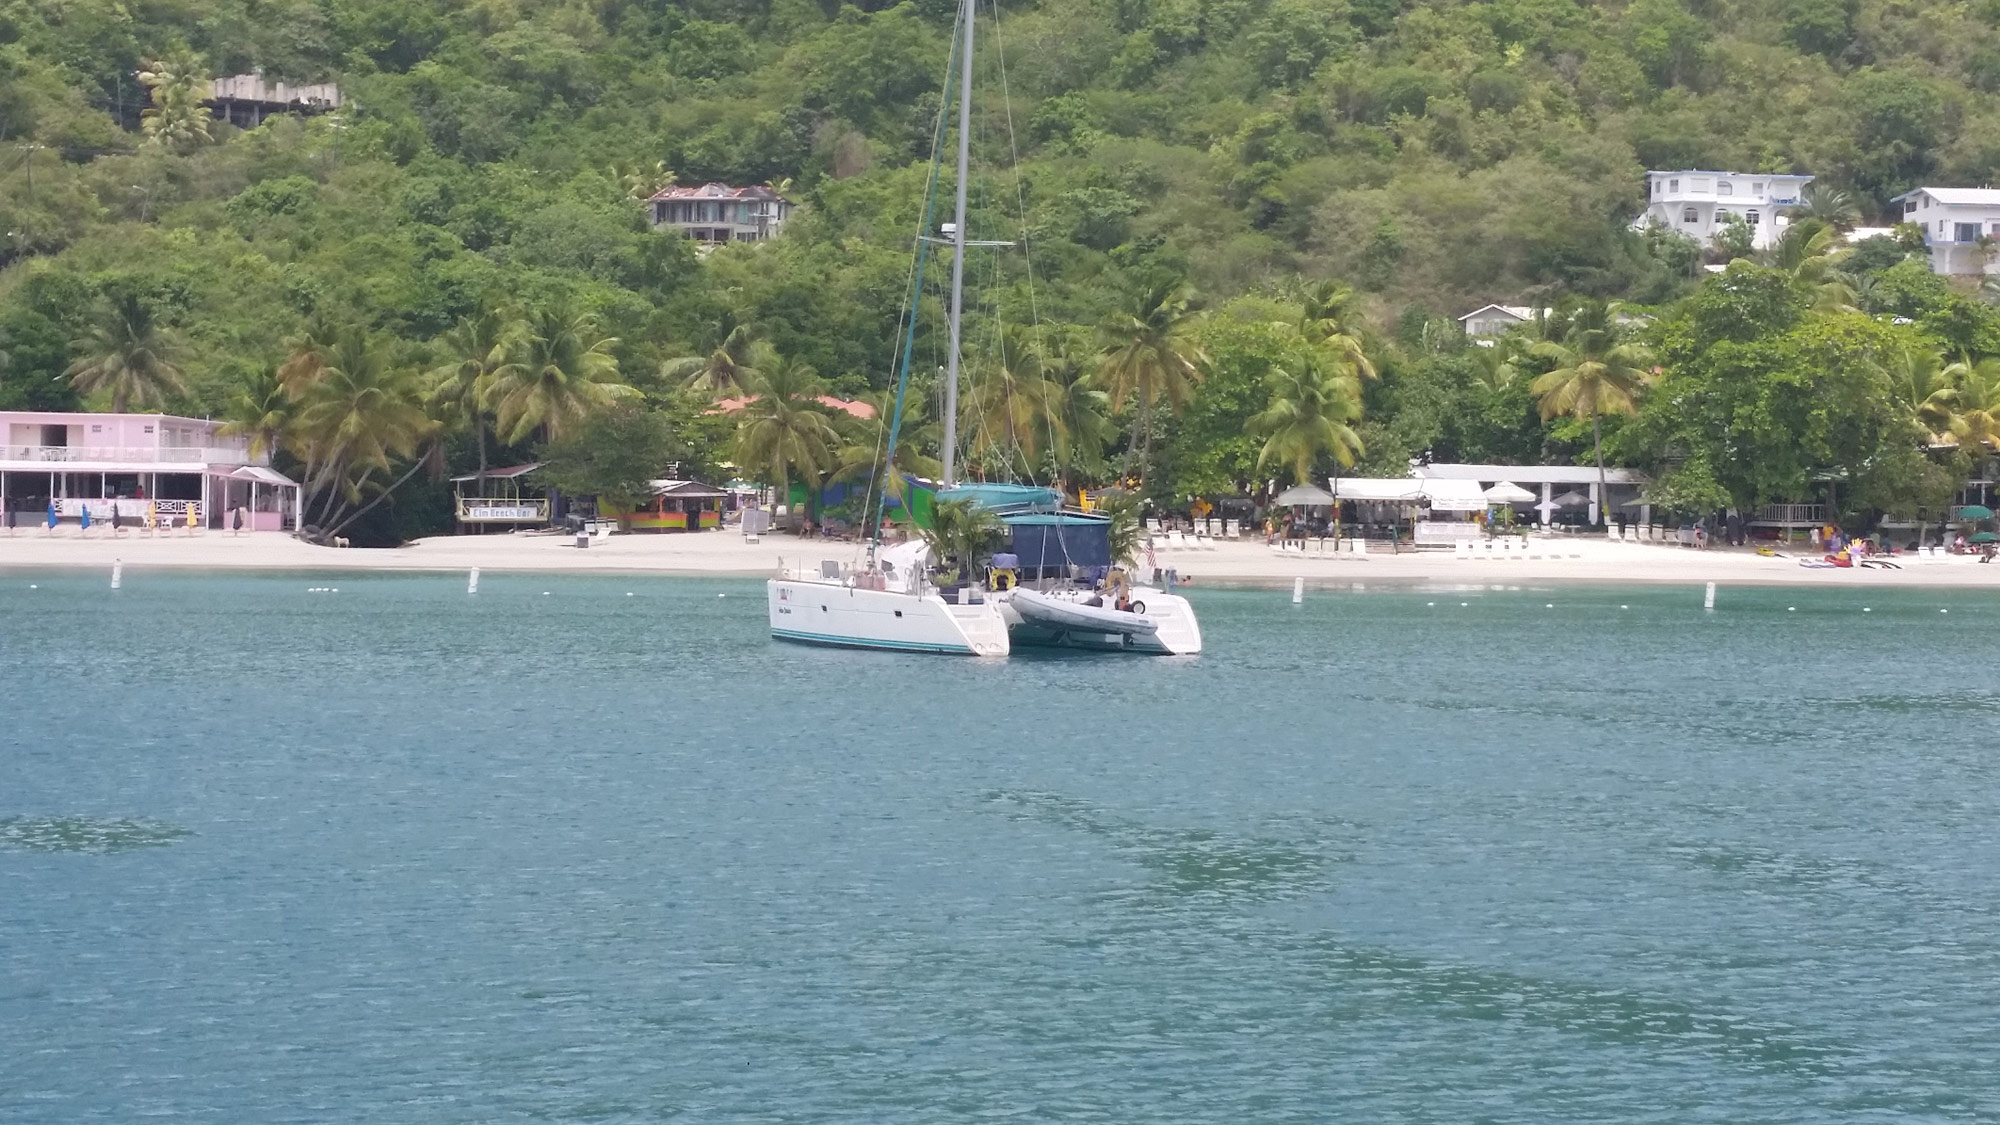 sailboat in the British Virgin Islands